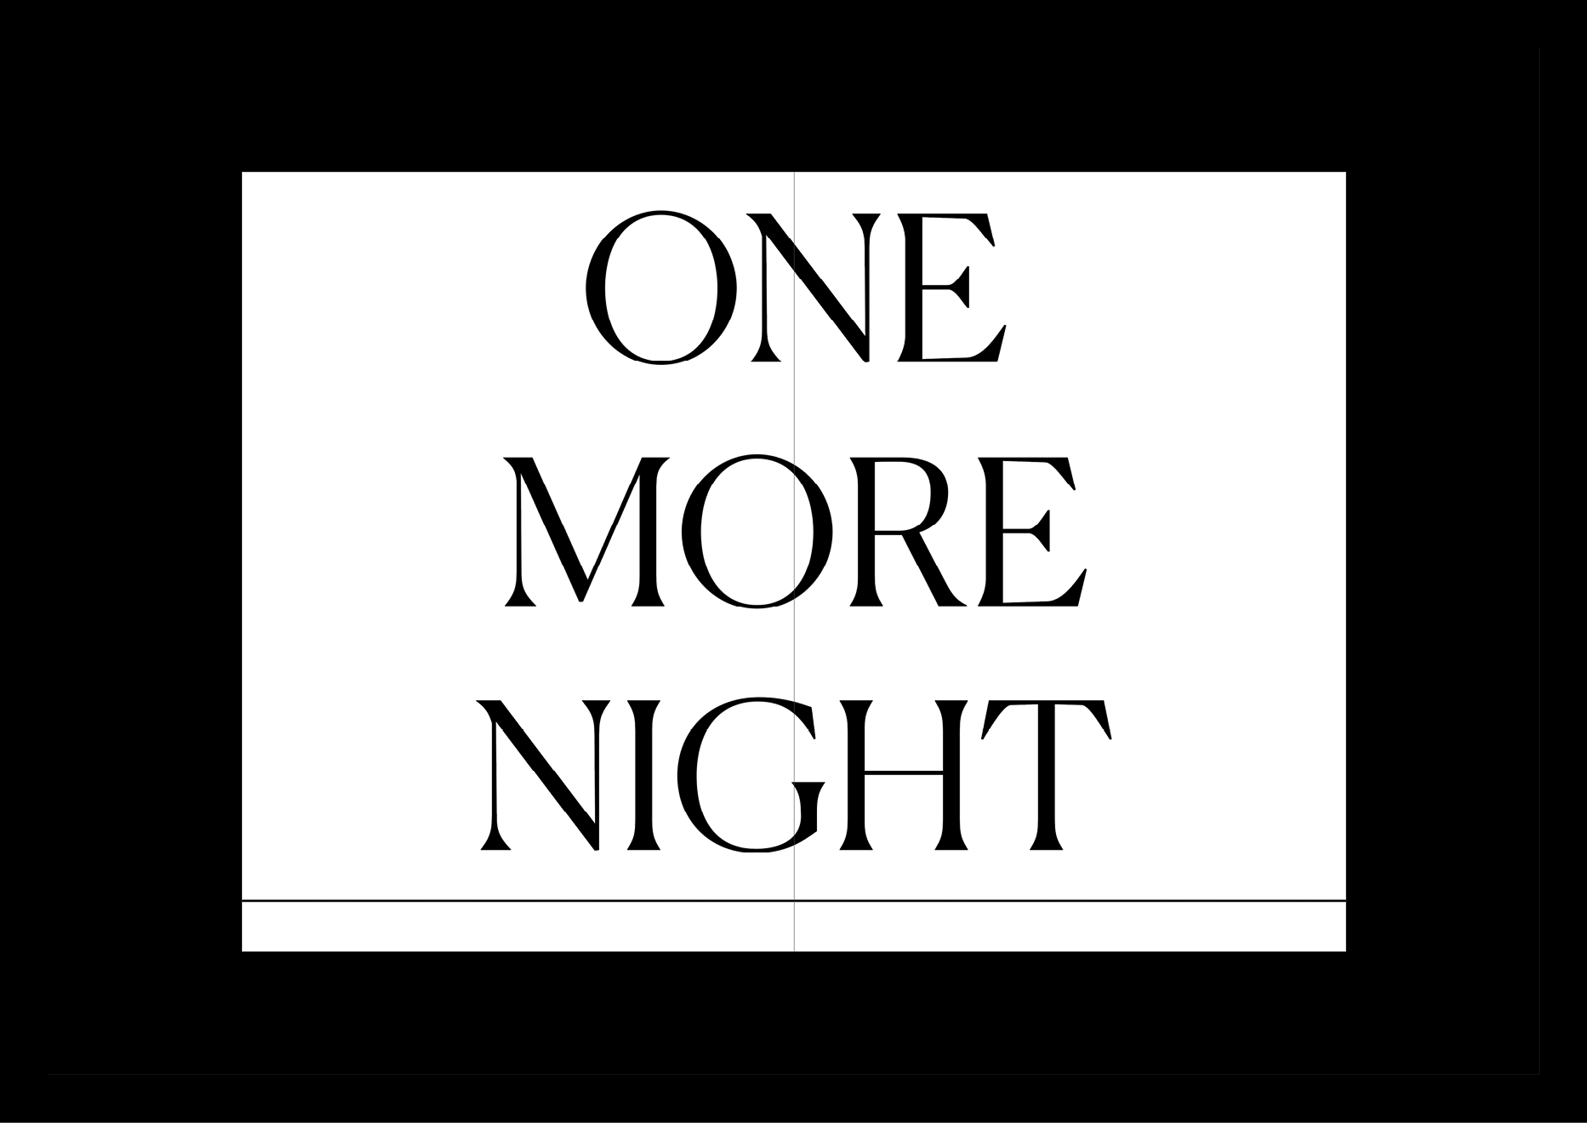 N—M ONE MORE NIGHT